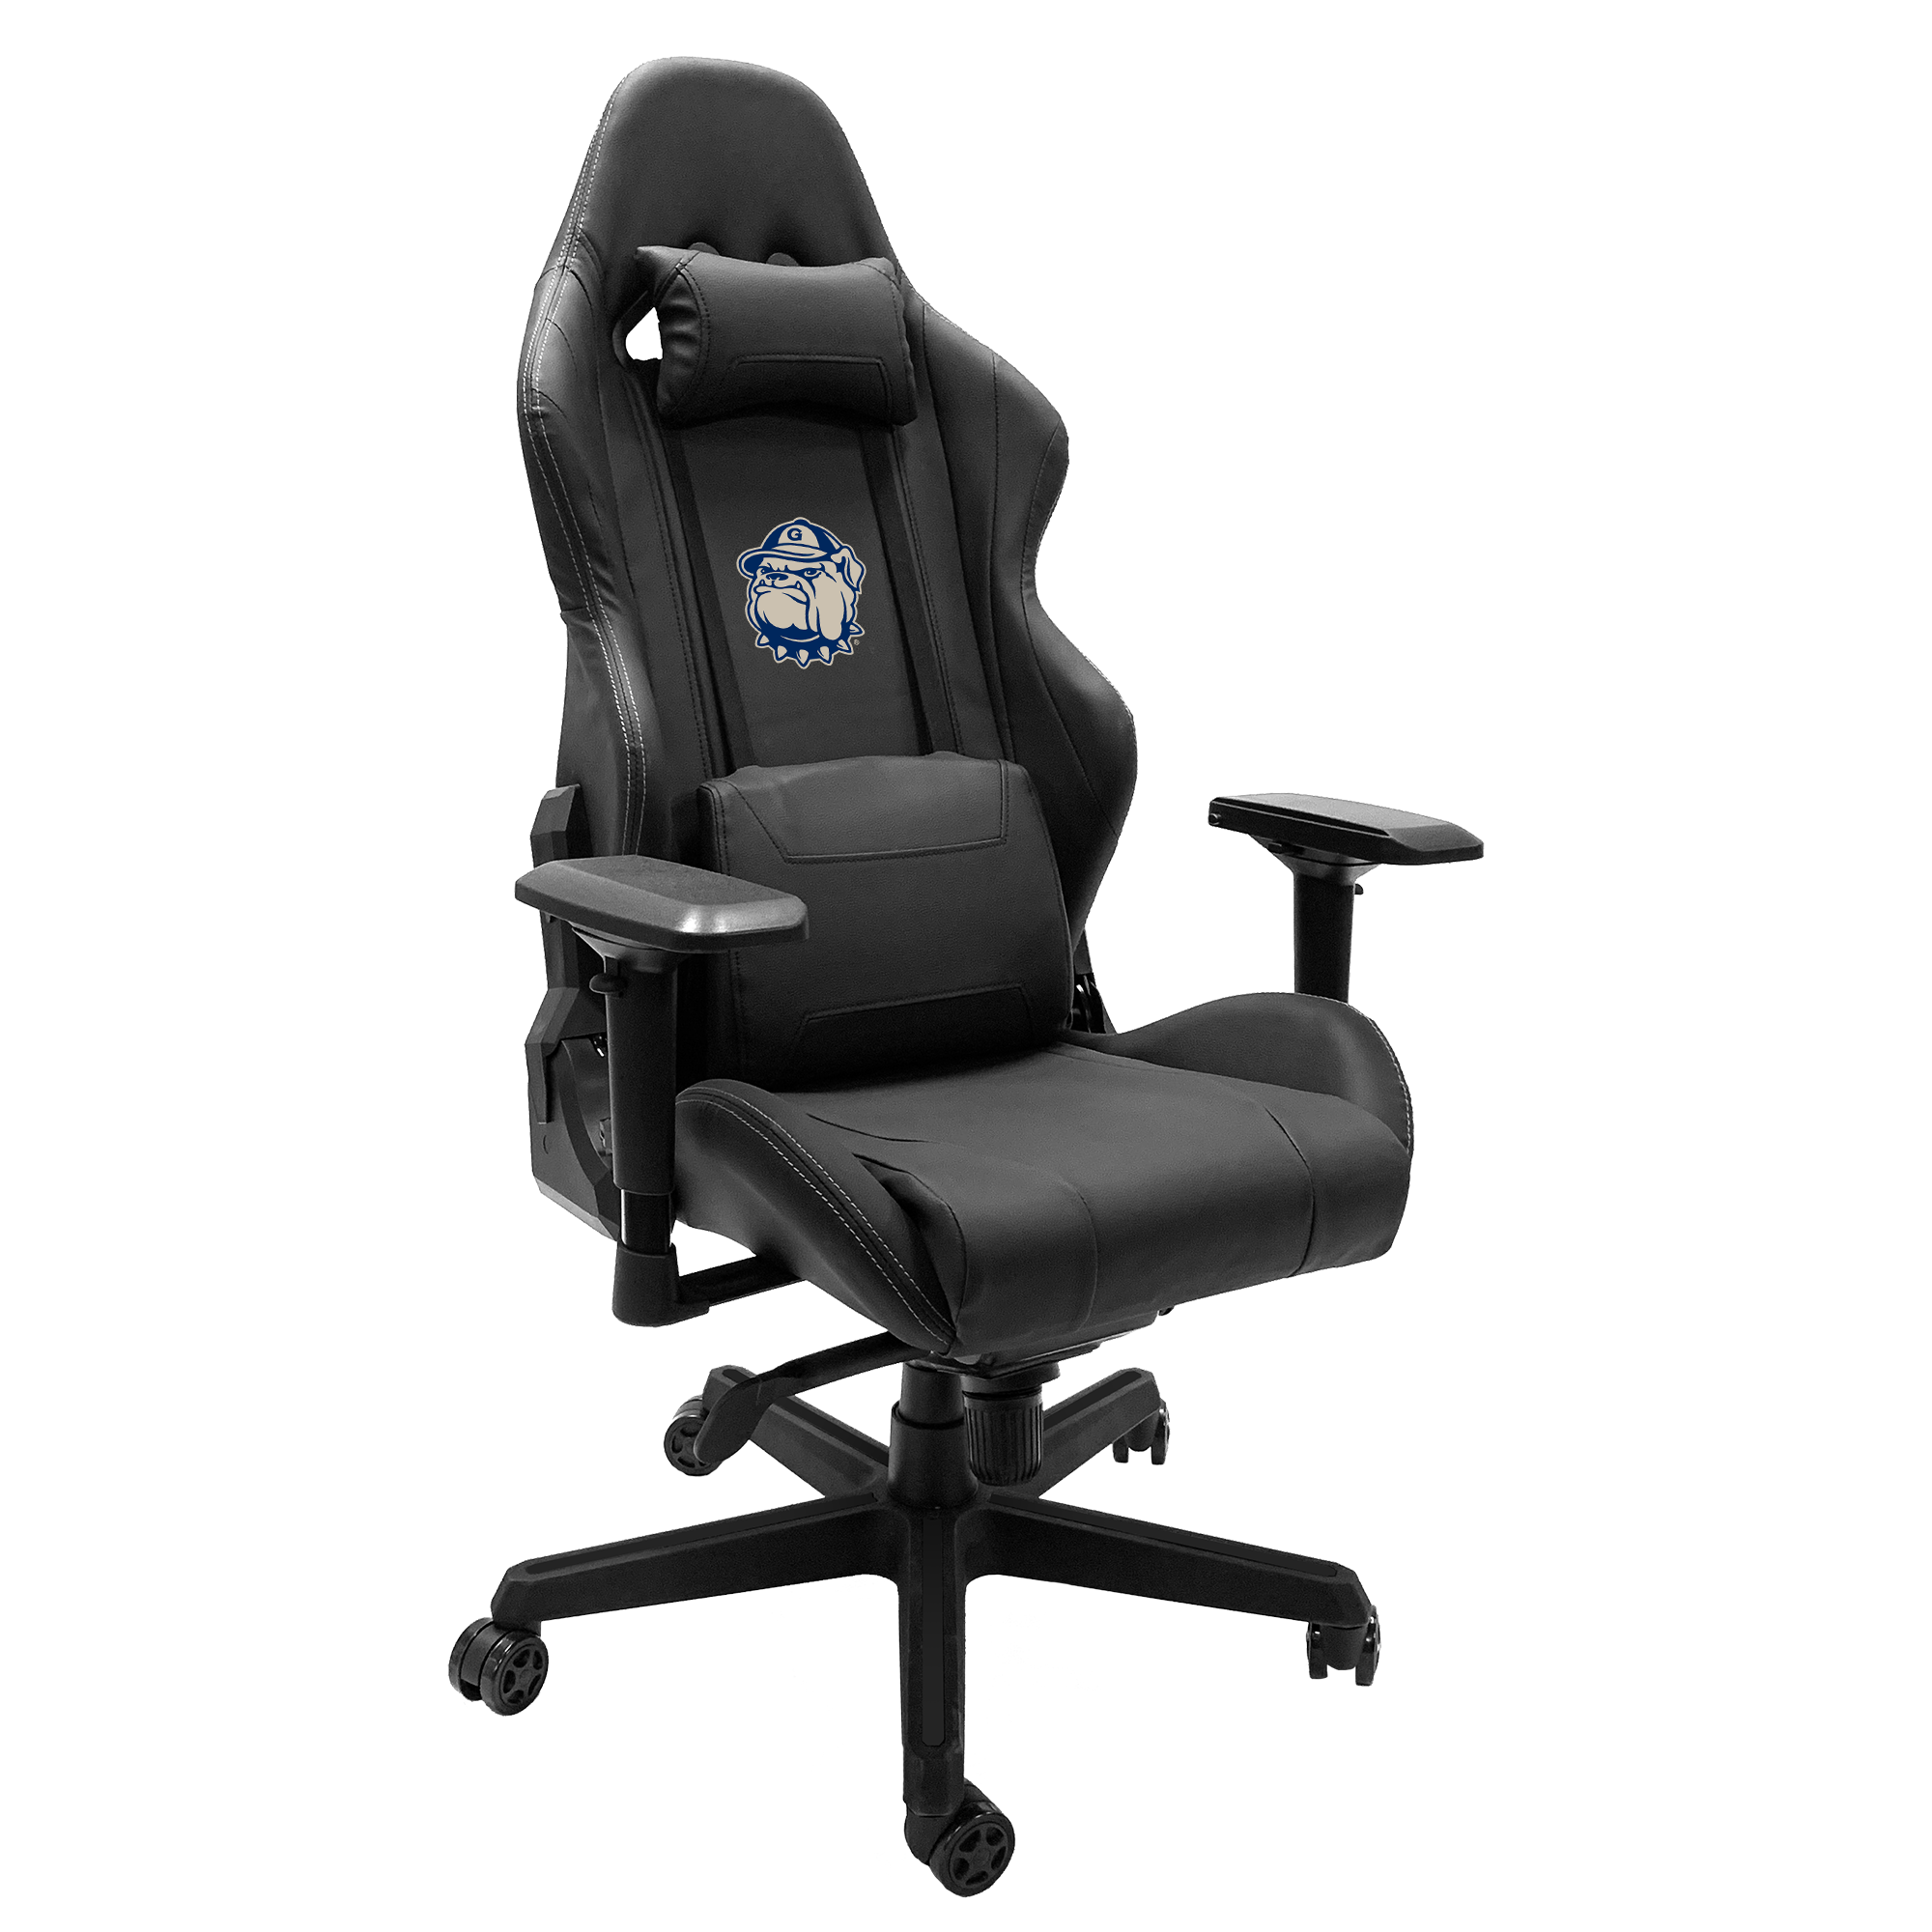 Xpression Gaming Chair with Georgetown Hoyas Secondary